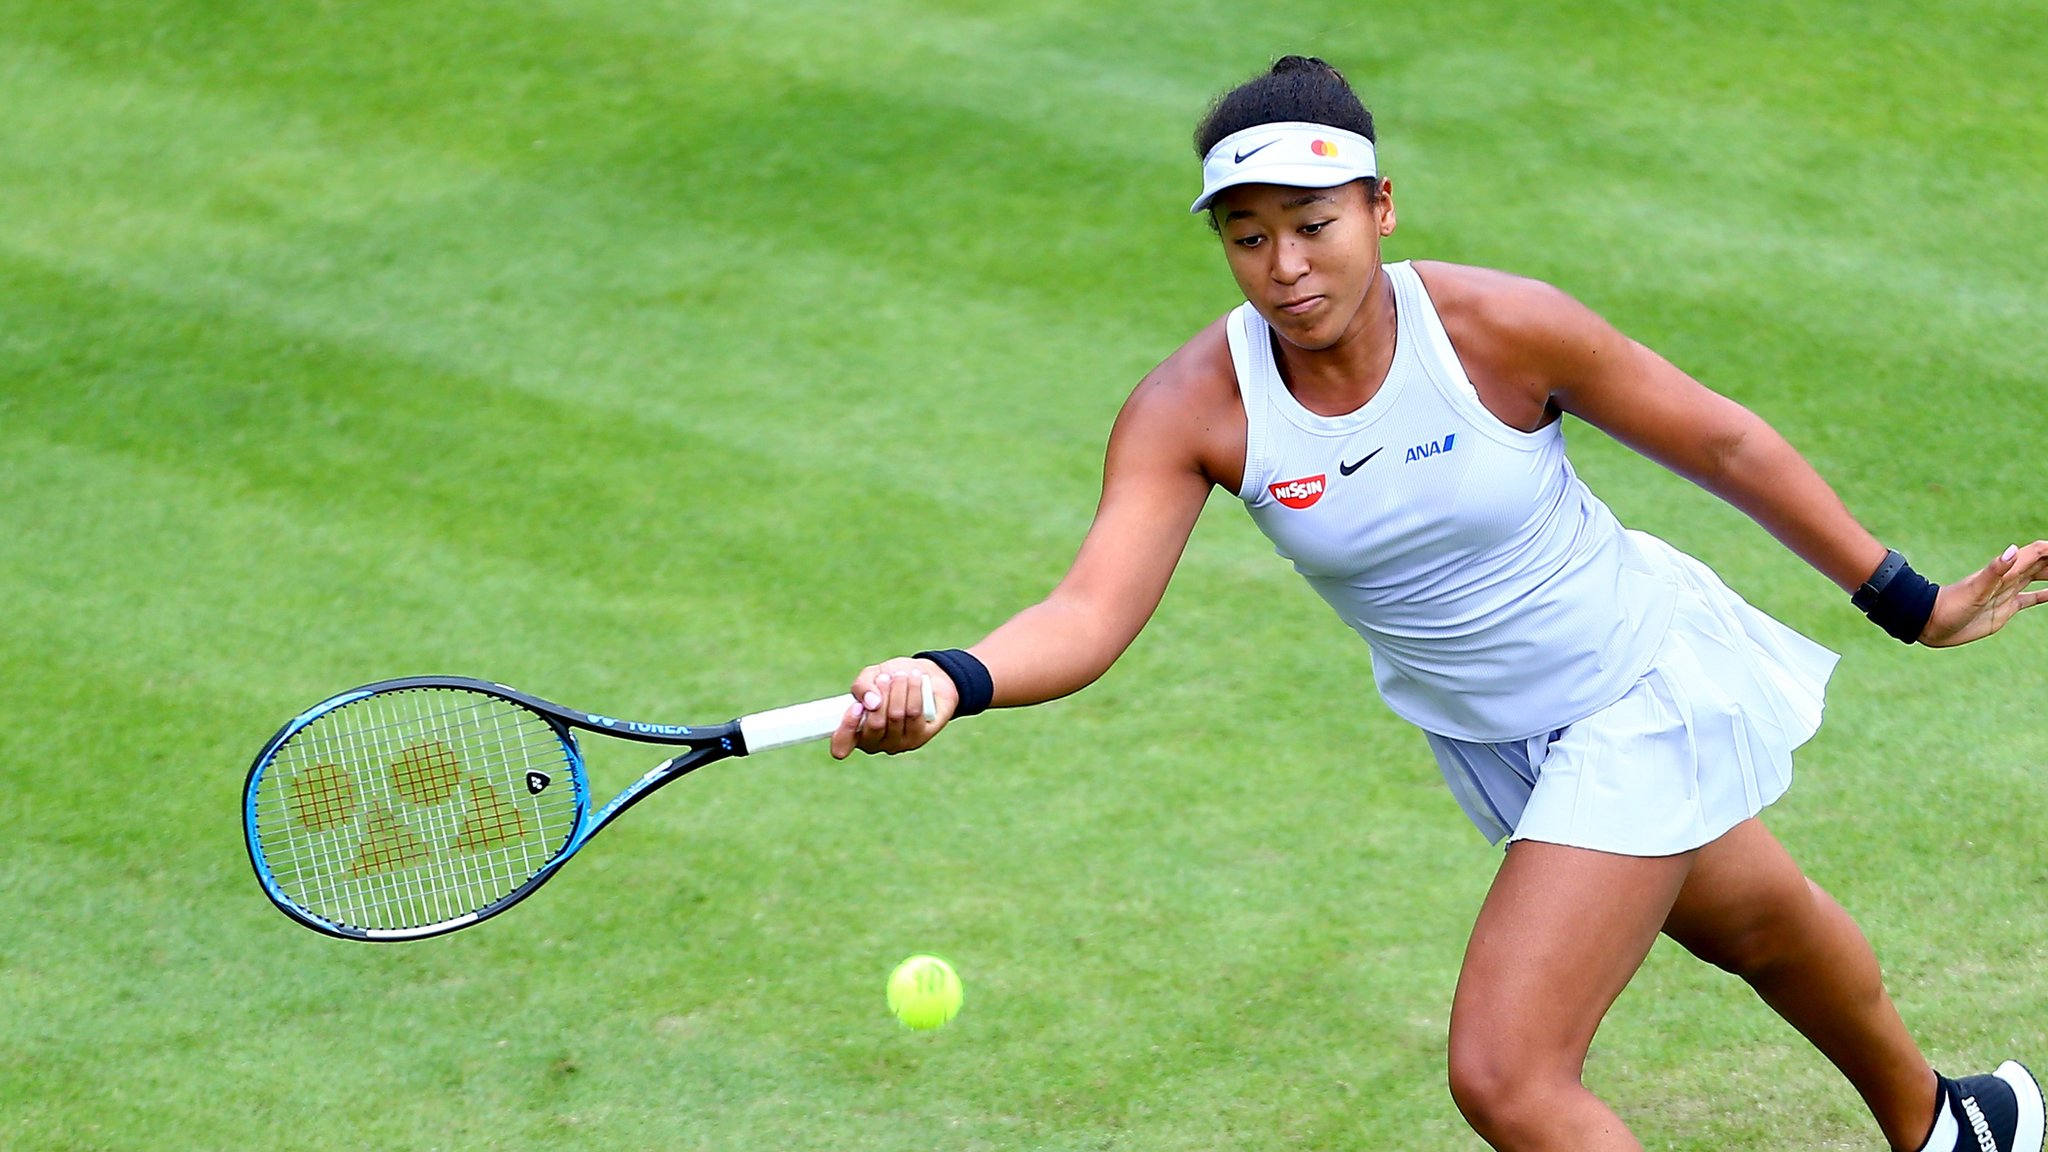 World number one Osaka suffers shock defeat in Birmingham